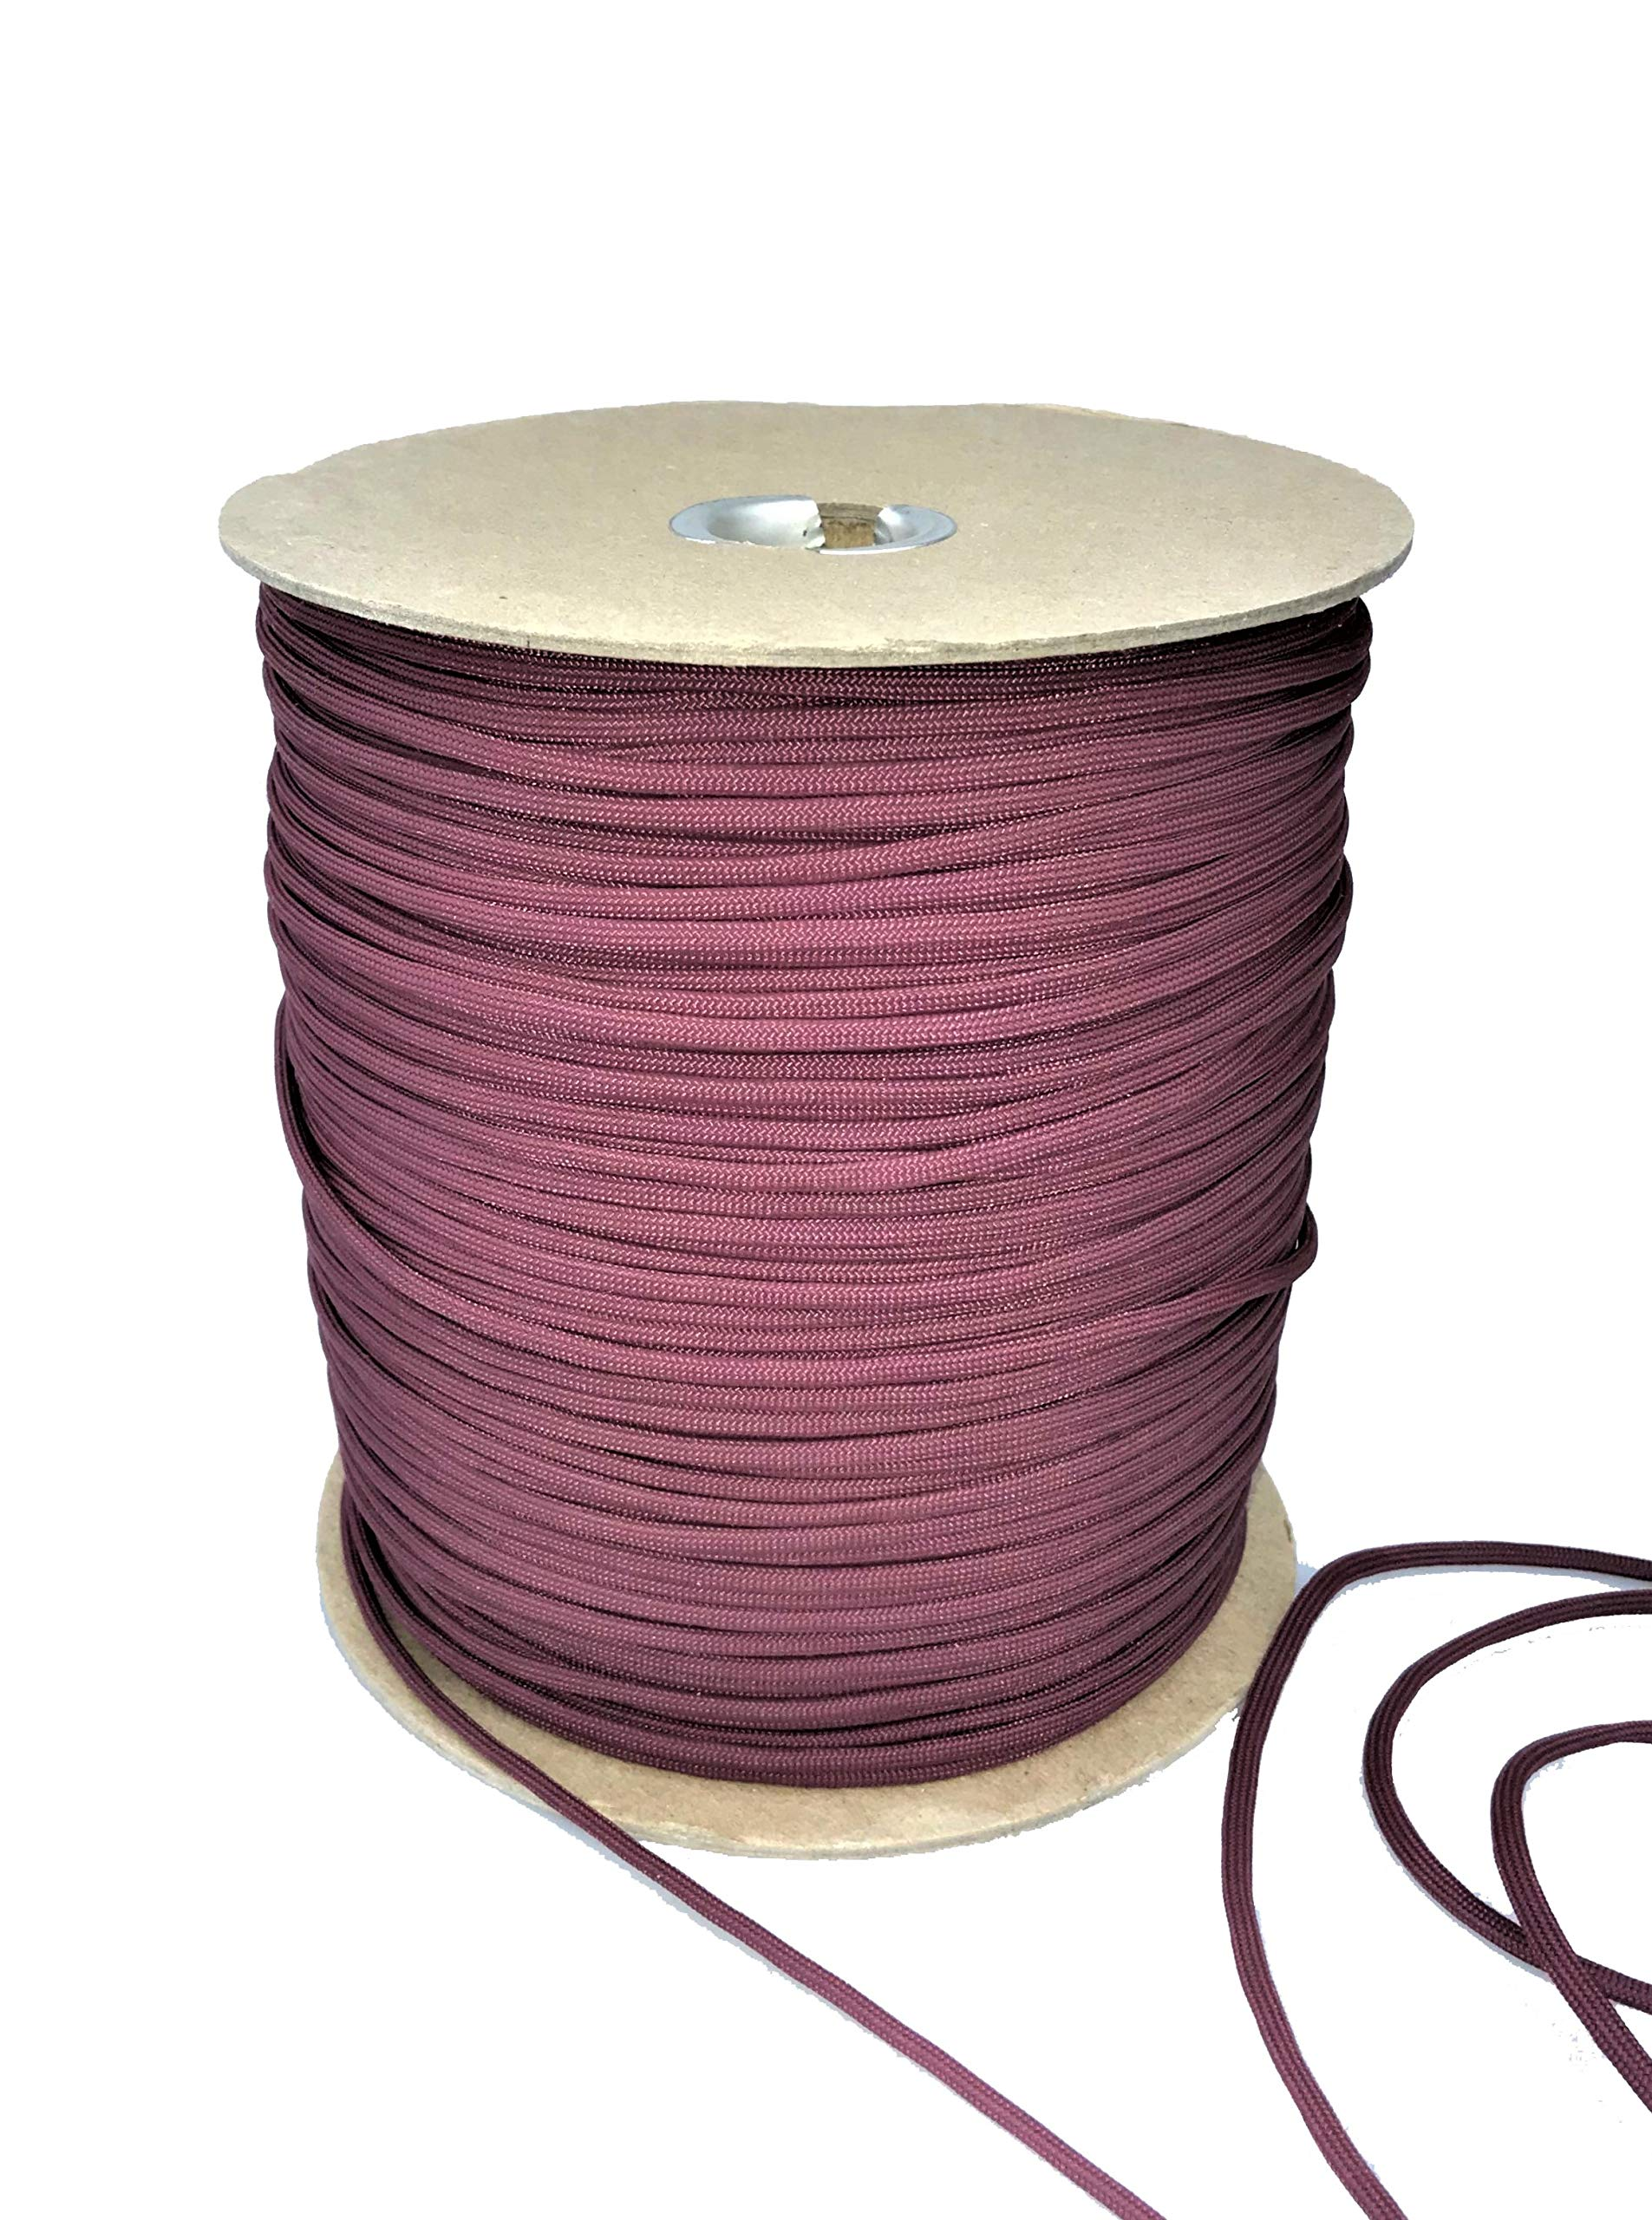 Paracord 550 Type III 7 Strand Multi-Purpose Parachute Cord in 1000 and 100 Foot Spools. Used for Camping, Hiking, Boating, Survival, and Crafting. 100% Nylon-Made in the USA (Burgundy, 1000)